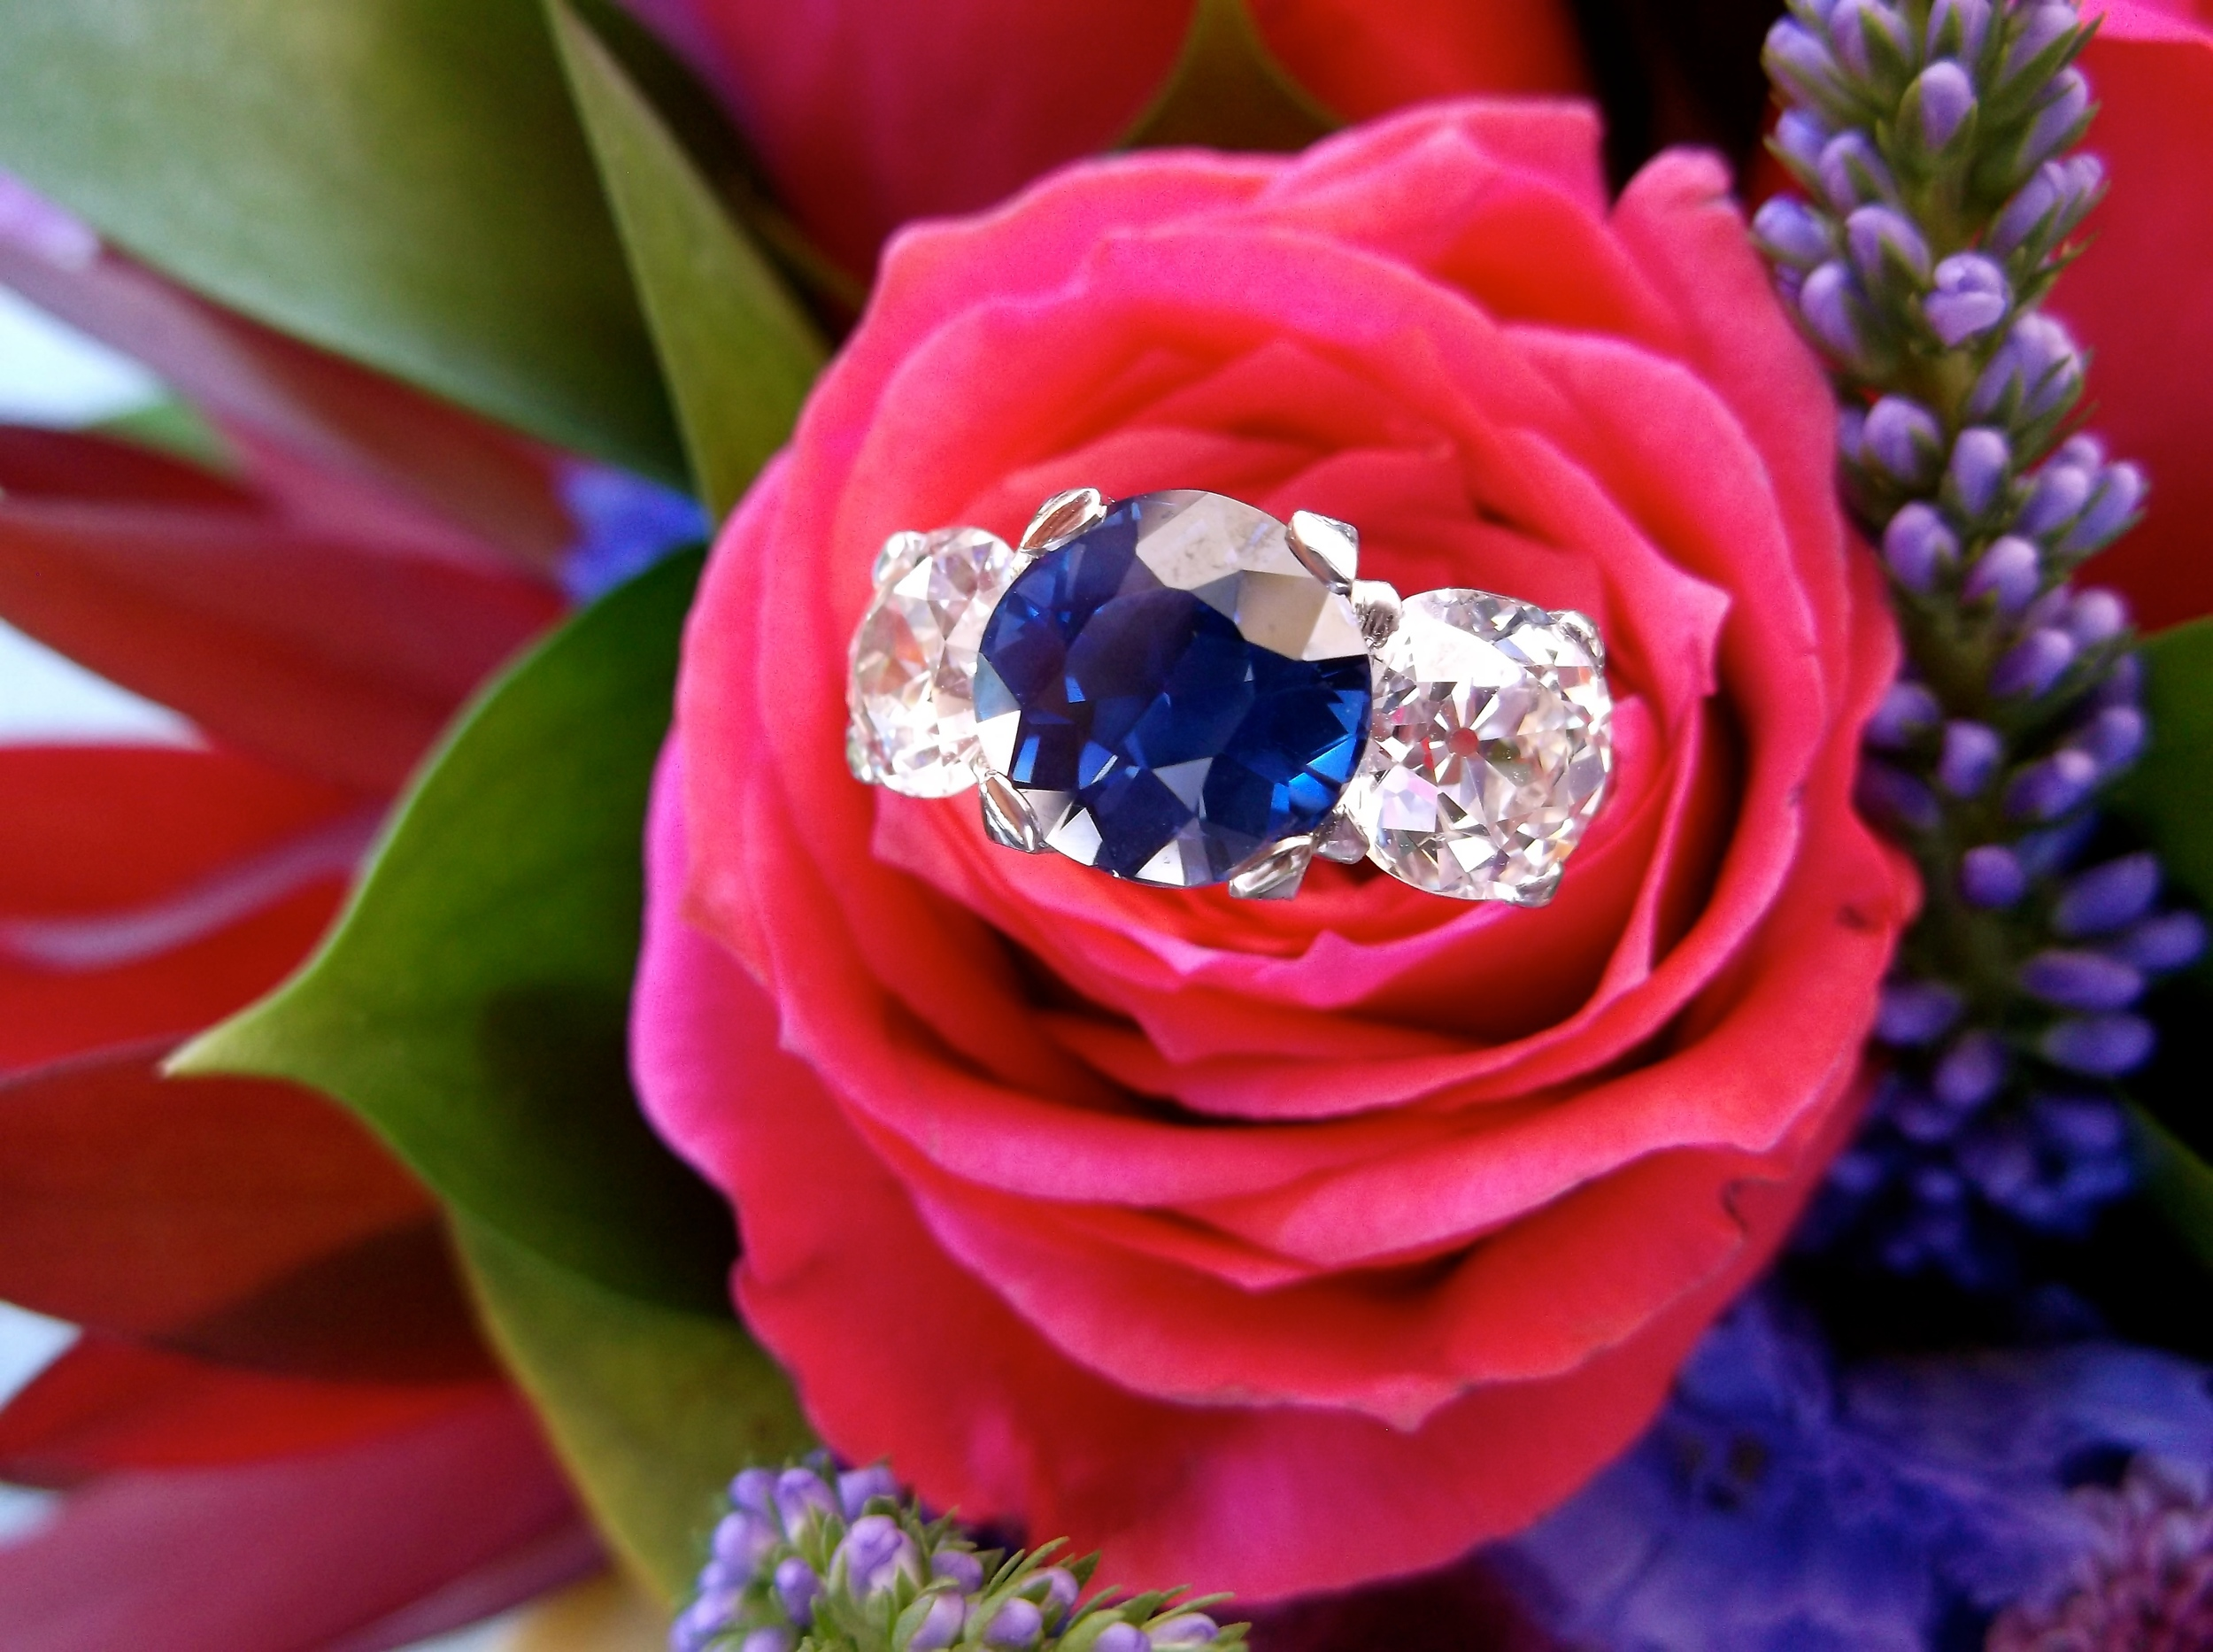 SOLD - Gorgeous Art Deco 3.15 carat GIA certified, natural, no treatment, Sri Lankan sapphire set in platinum with 2.39 carats total weight in Old European cut diamonds.